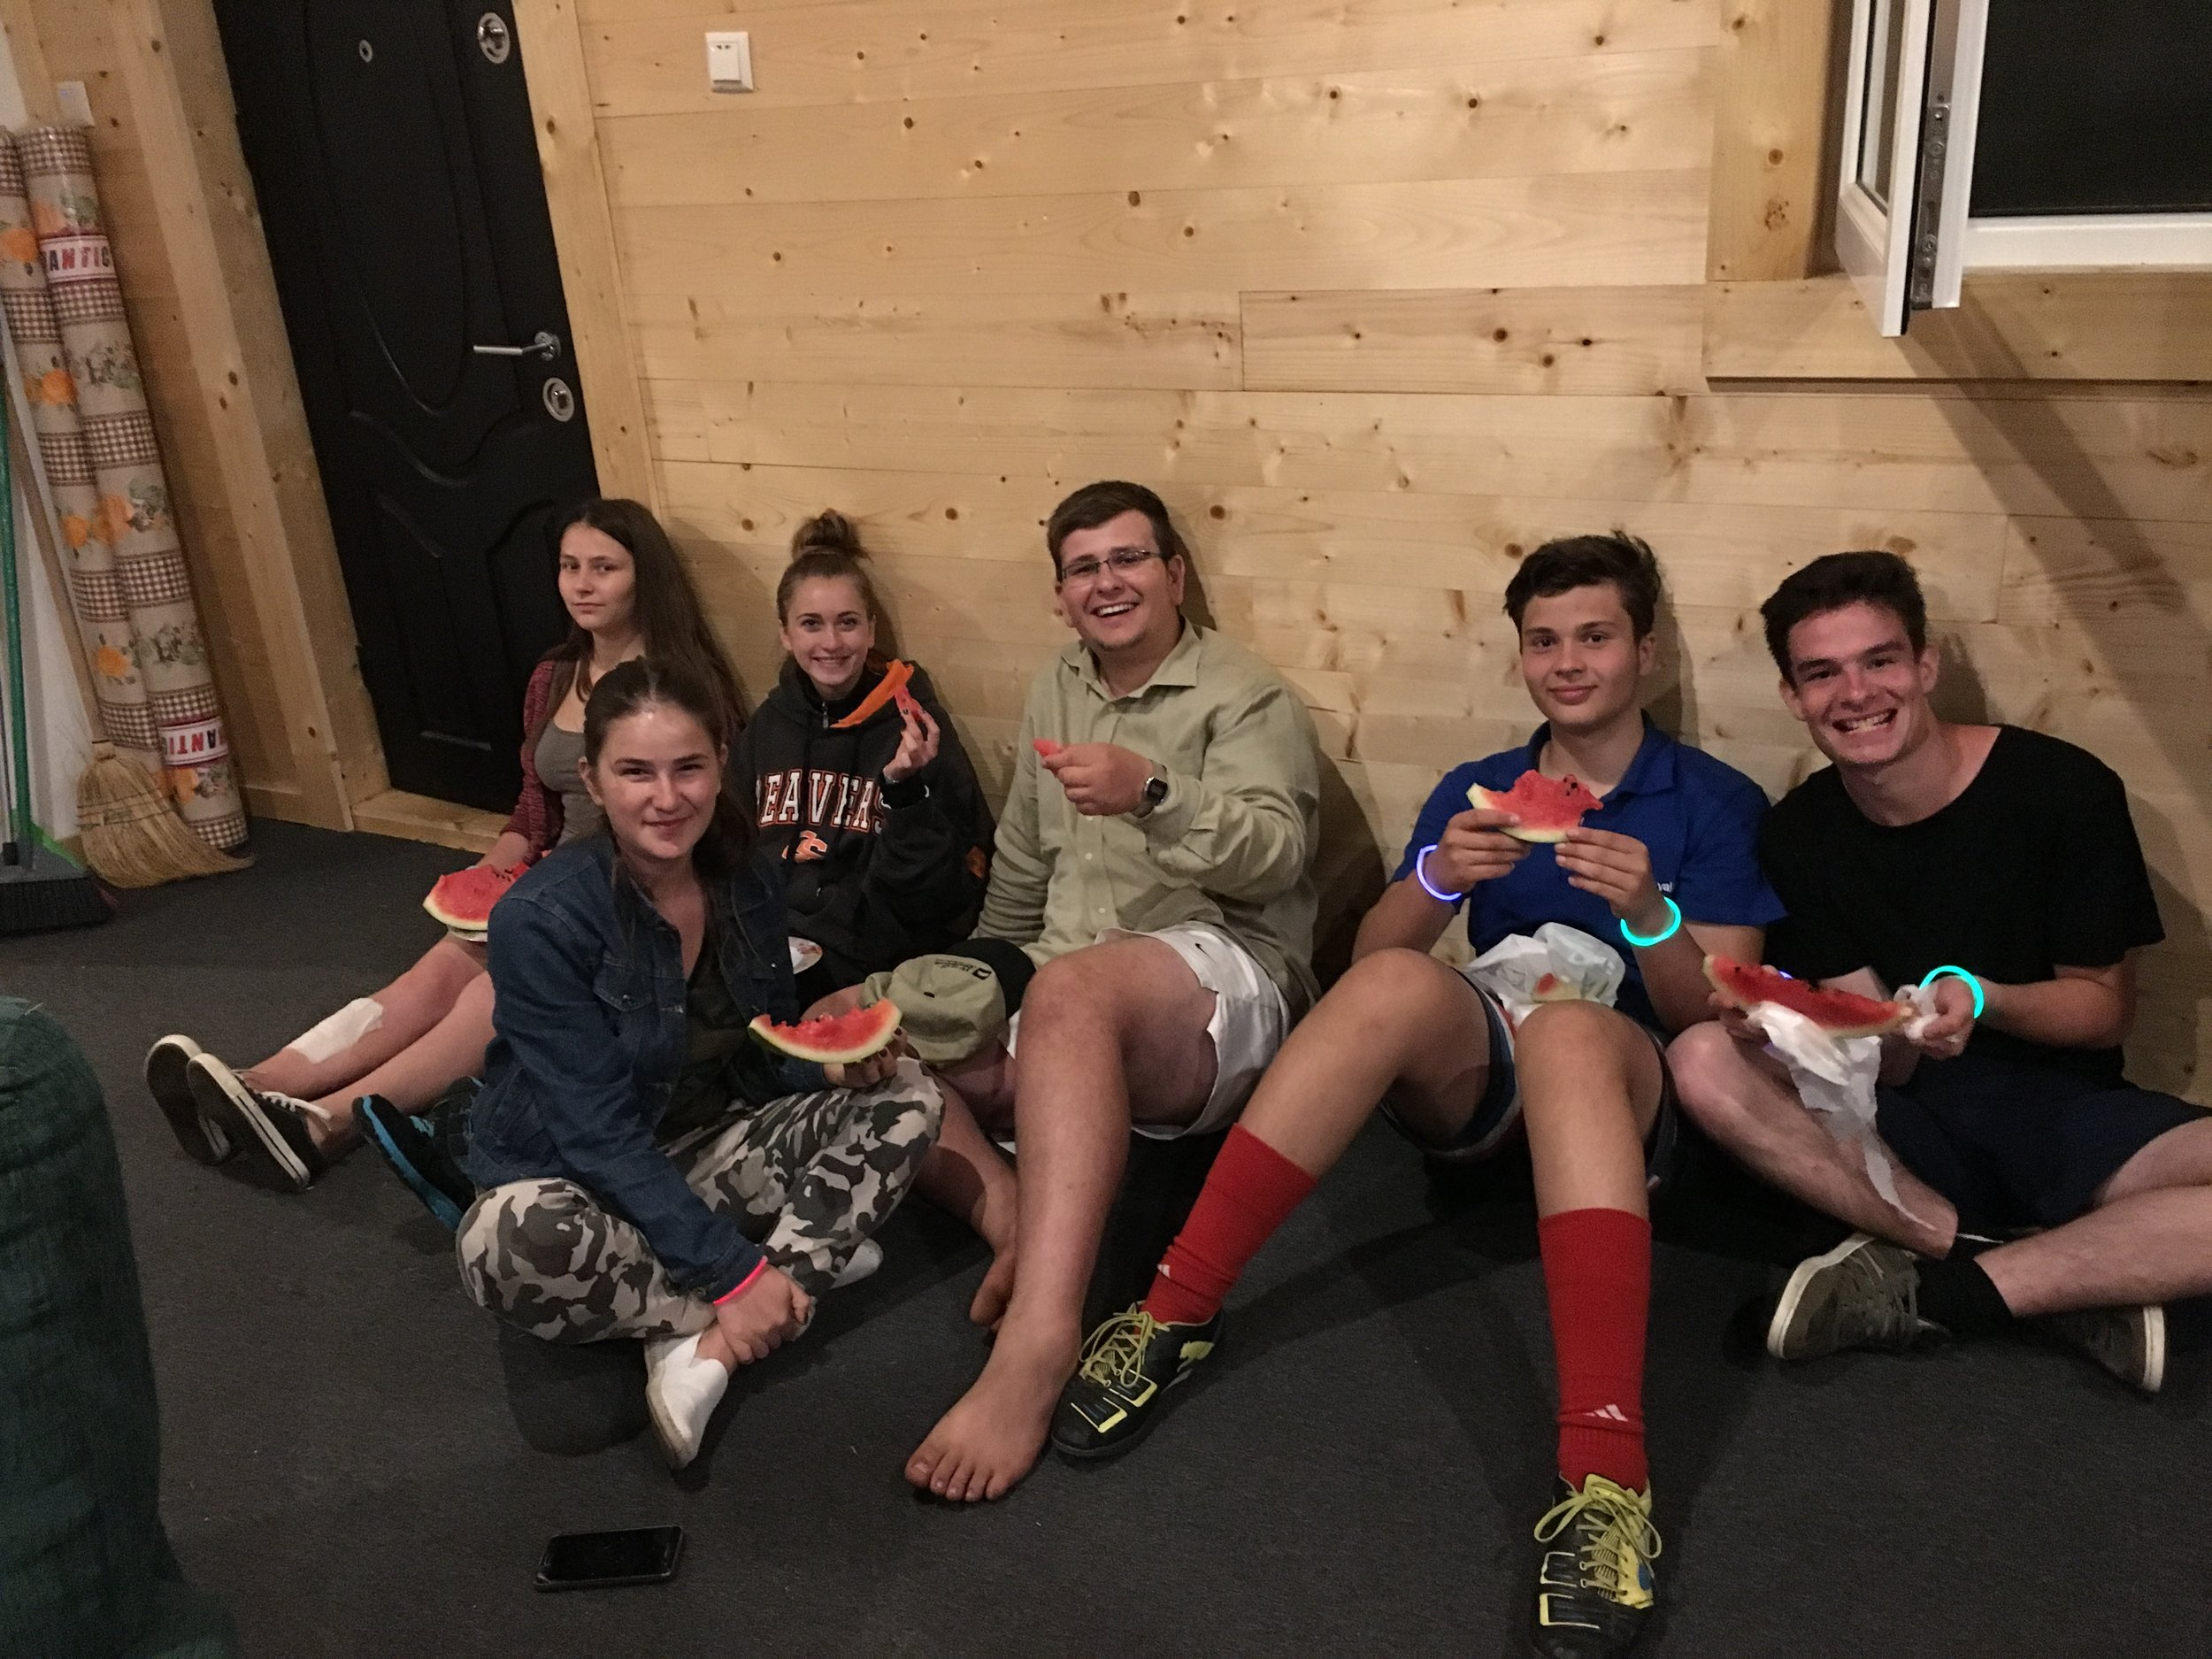 Our summer staff is aways a blast to hang out with. Whether it is a mid-day party in the kitchen or a late night snack their enthusiasm and generosity is always a great blessing.